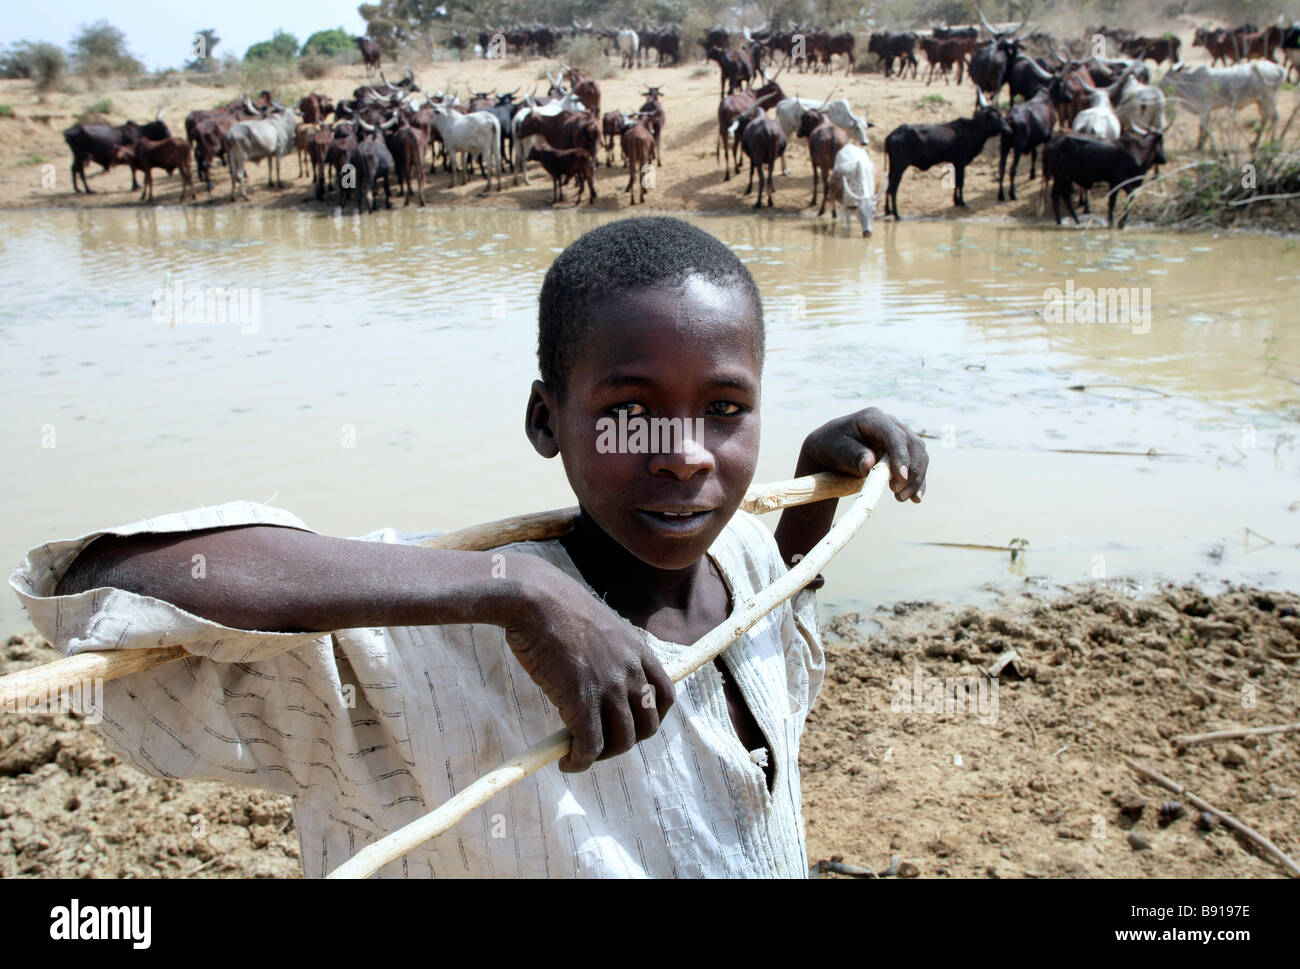 Nigeria: young herdsman with his animals at a watering place - Stock Image